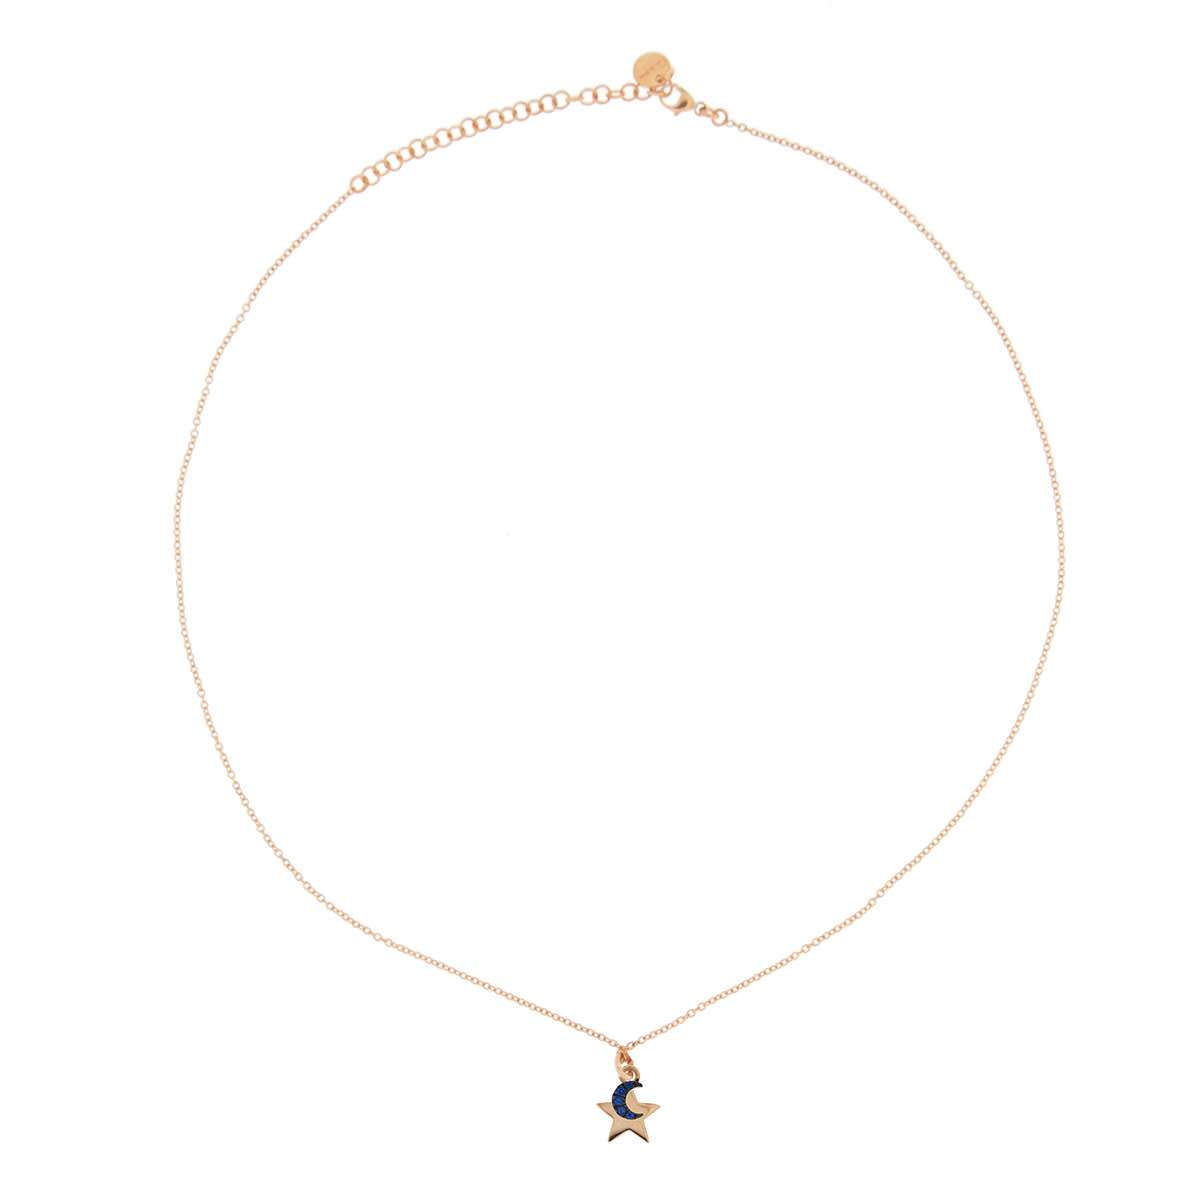 Chokers - Rose Gold Chain Choker with rounded pendant and Micro Zircons - Star/Moon - 1 | Rue des Mille